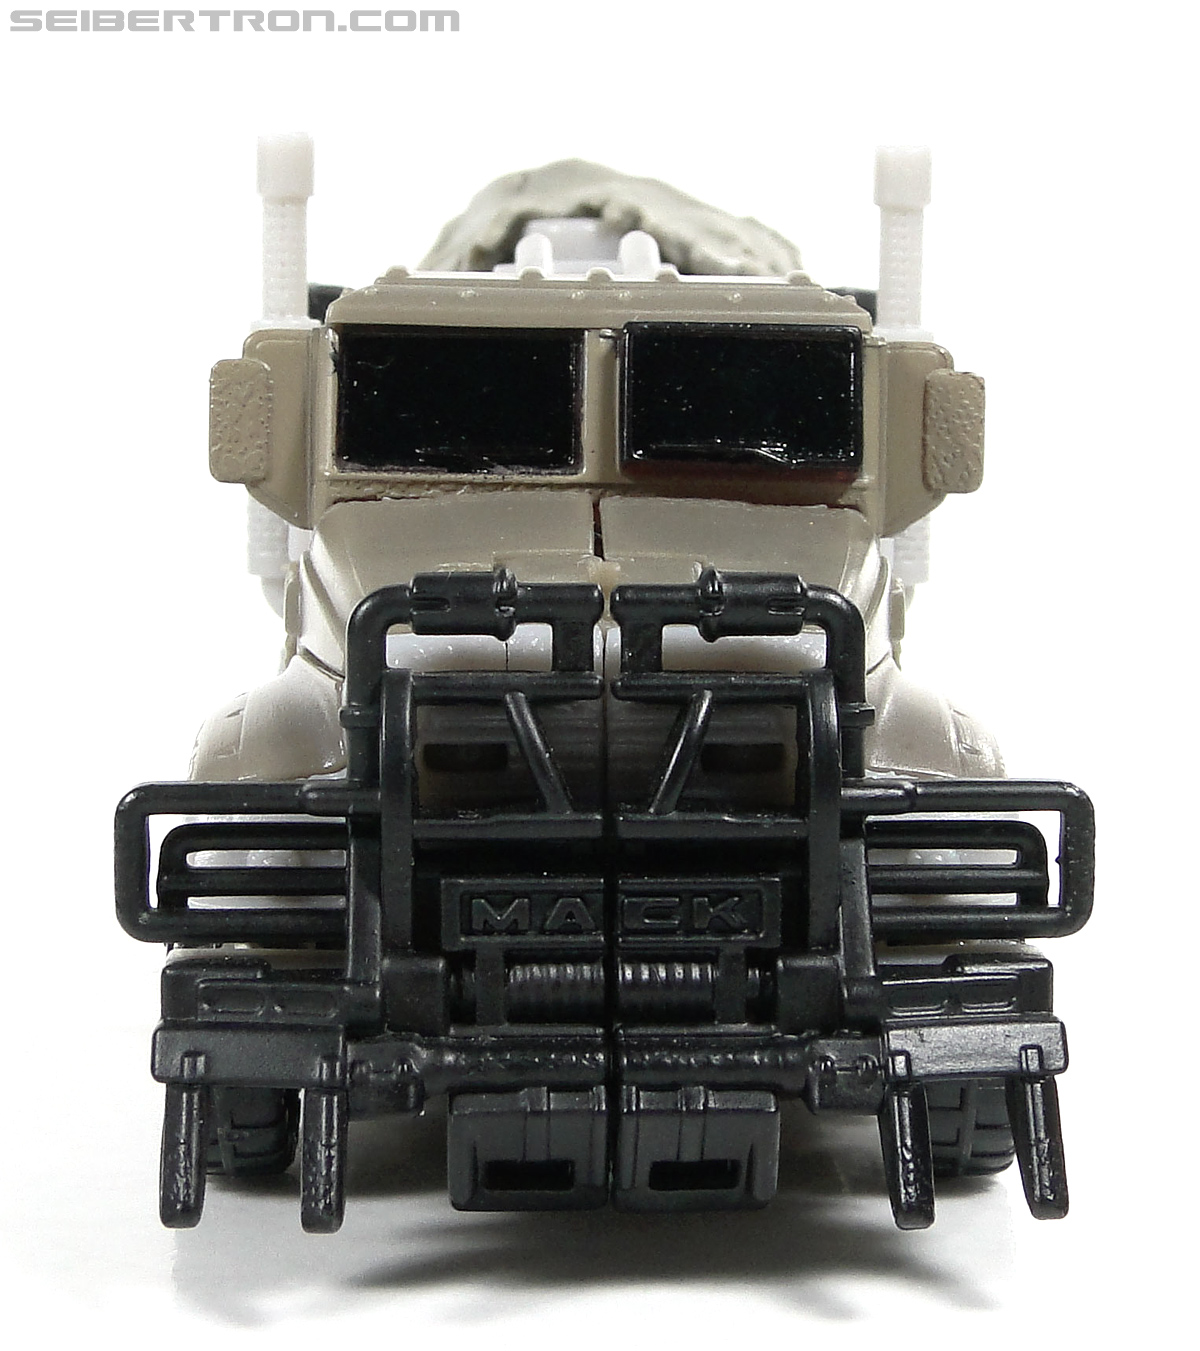 Transformers Dark of the Moon Megatron (Image #36 of 227)